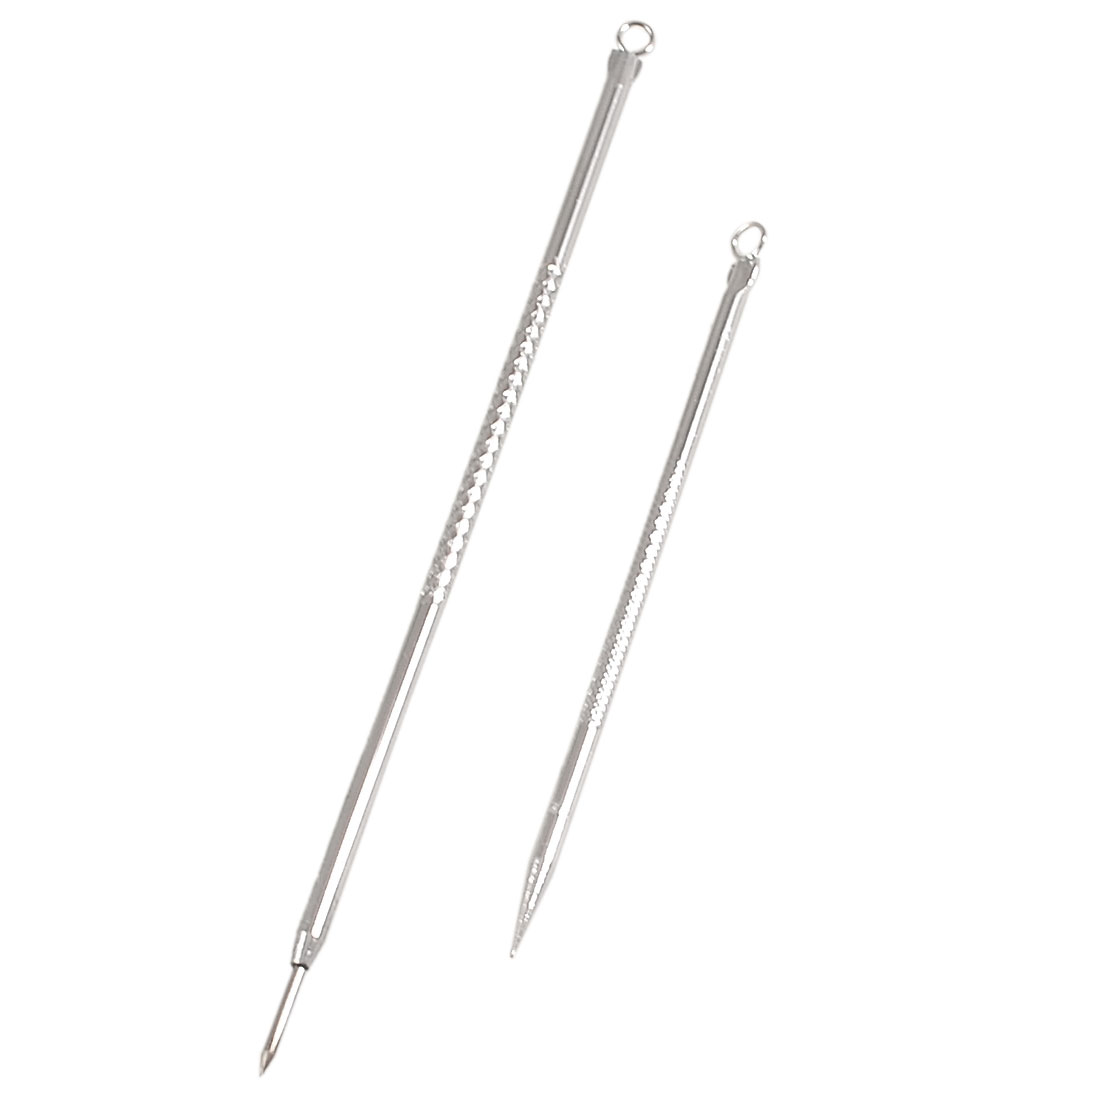 4mm Top Ring Dia Blackhead Extractor Tool Acne Needle 2 Pieces